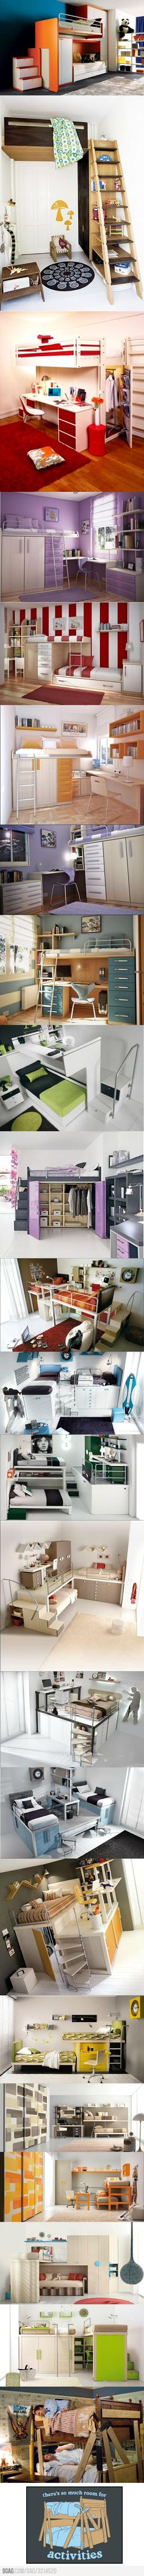 Coolest bunk beds ever.  I had red ones when I was little, they were not as exciting.